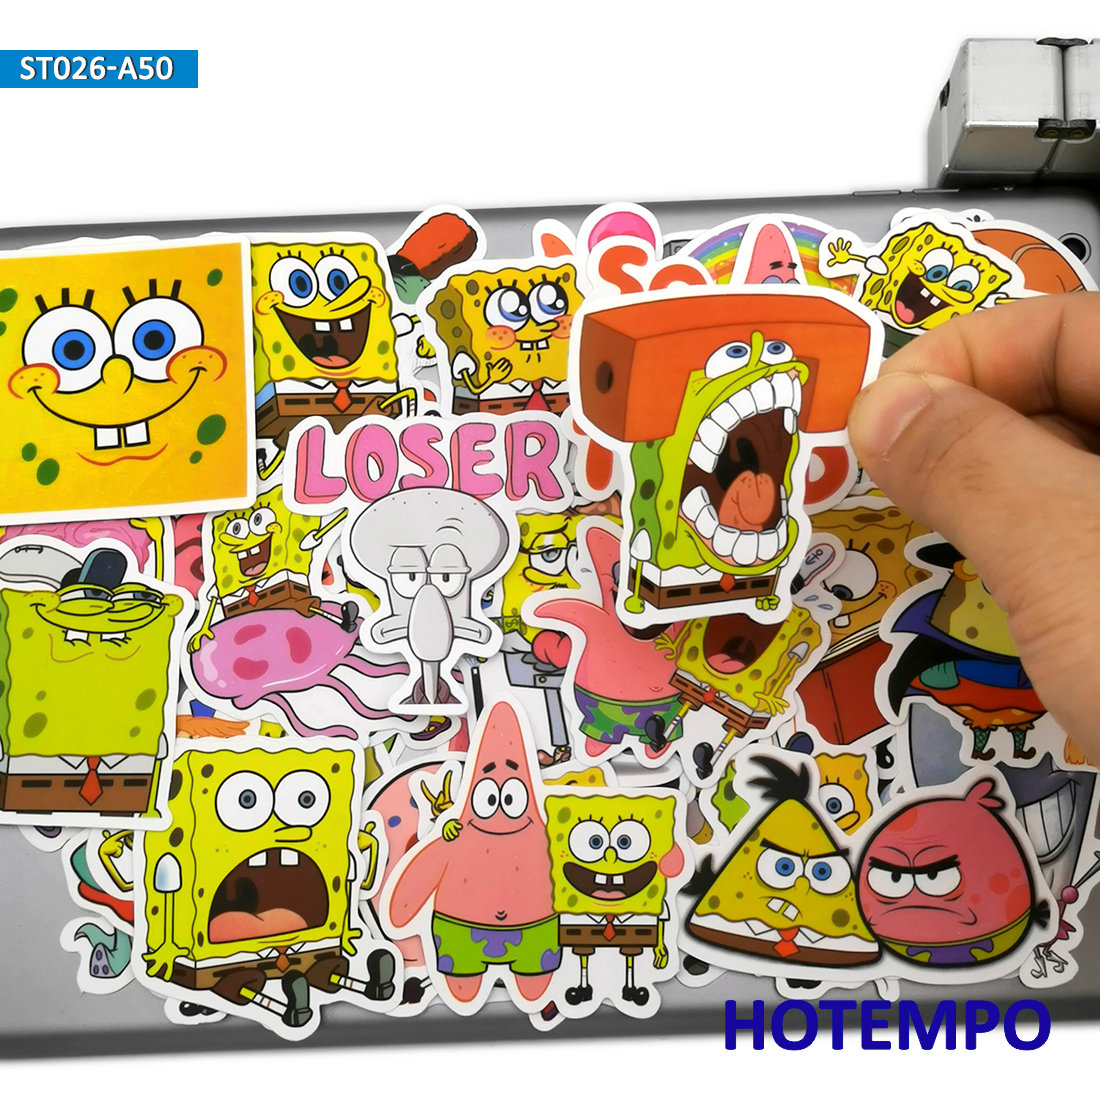 50pcs Cute Yellow Sponge SquarePants Fun TV Cartoon Stickers Toys For Mobile Phone Laptop Luggage Skateboard Anime Decal Sticker